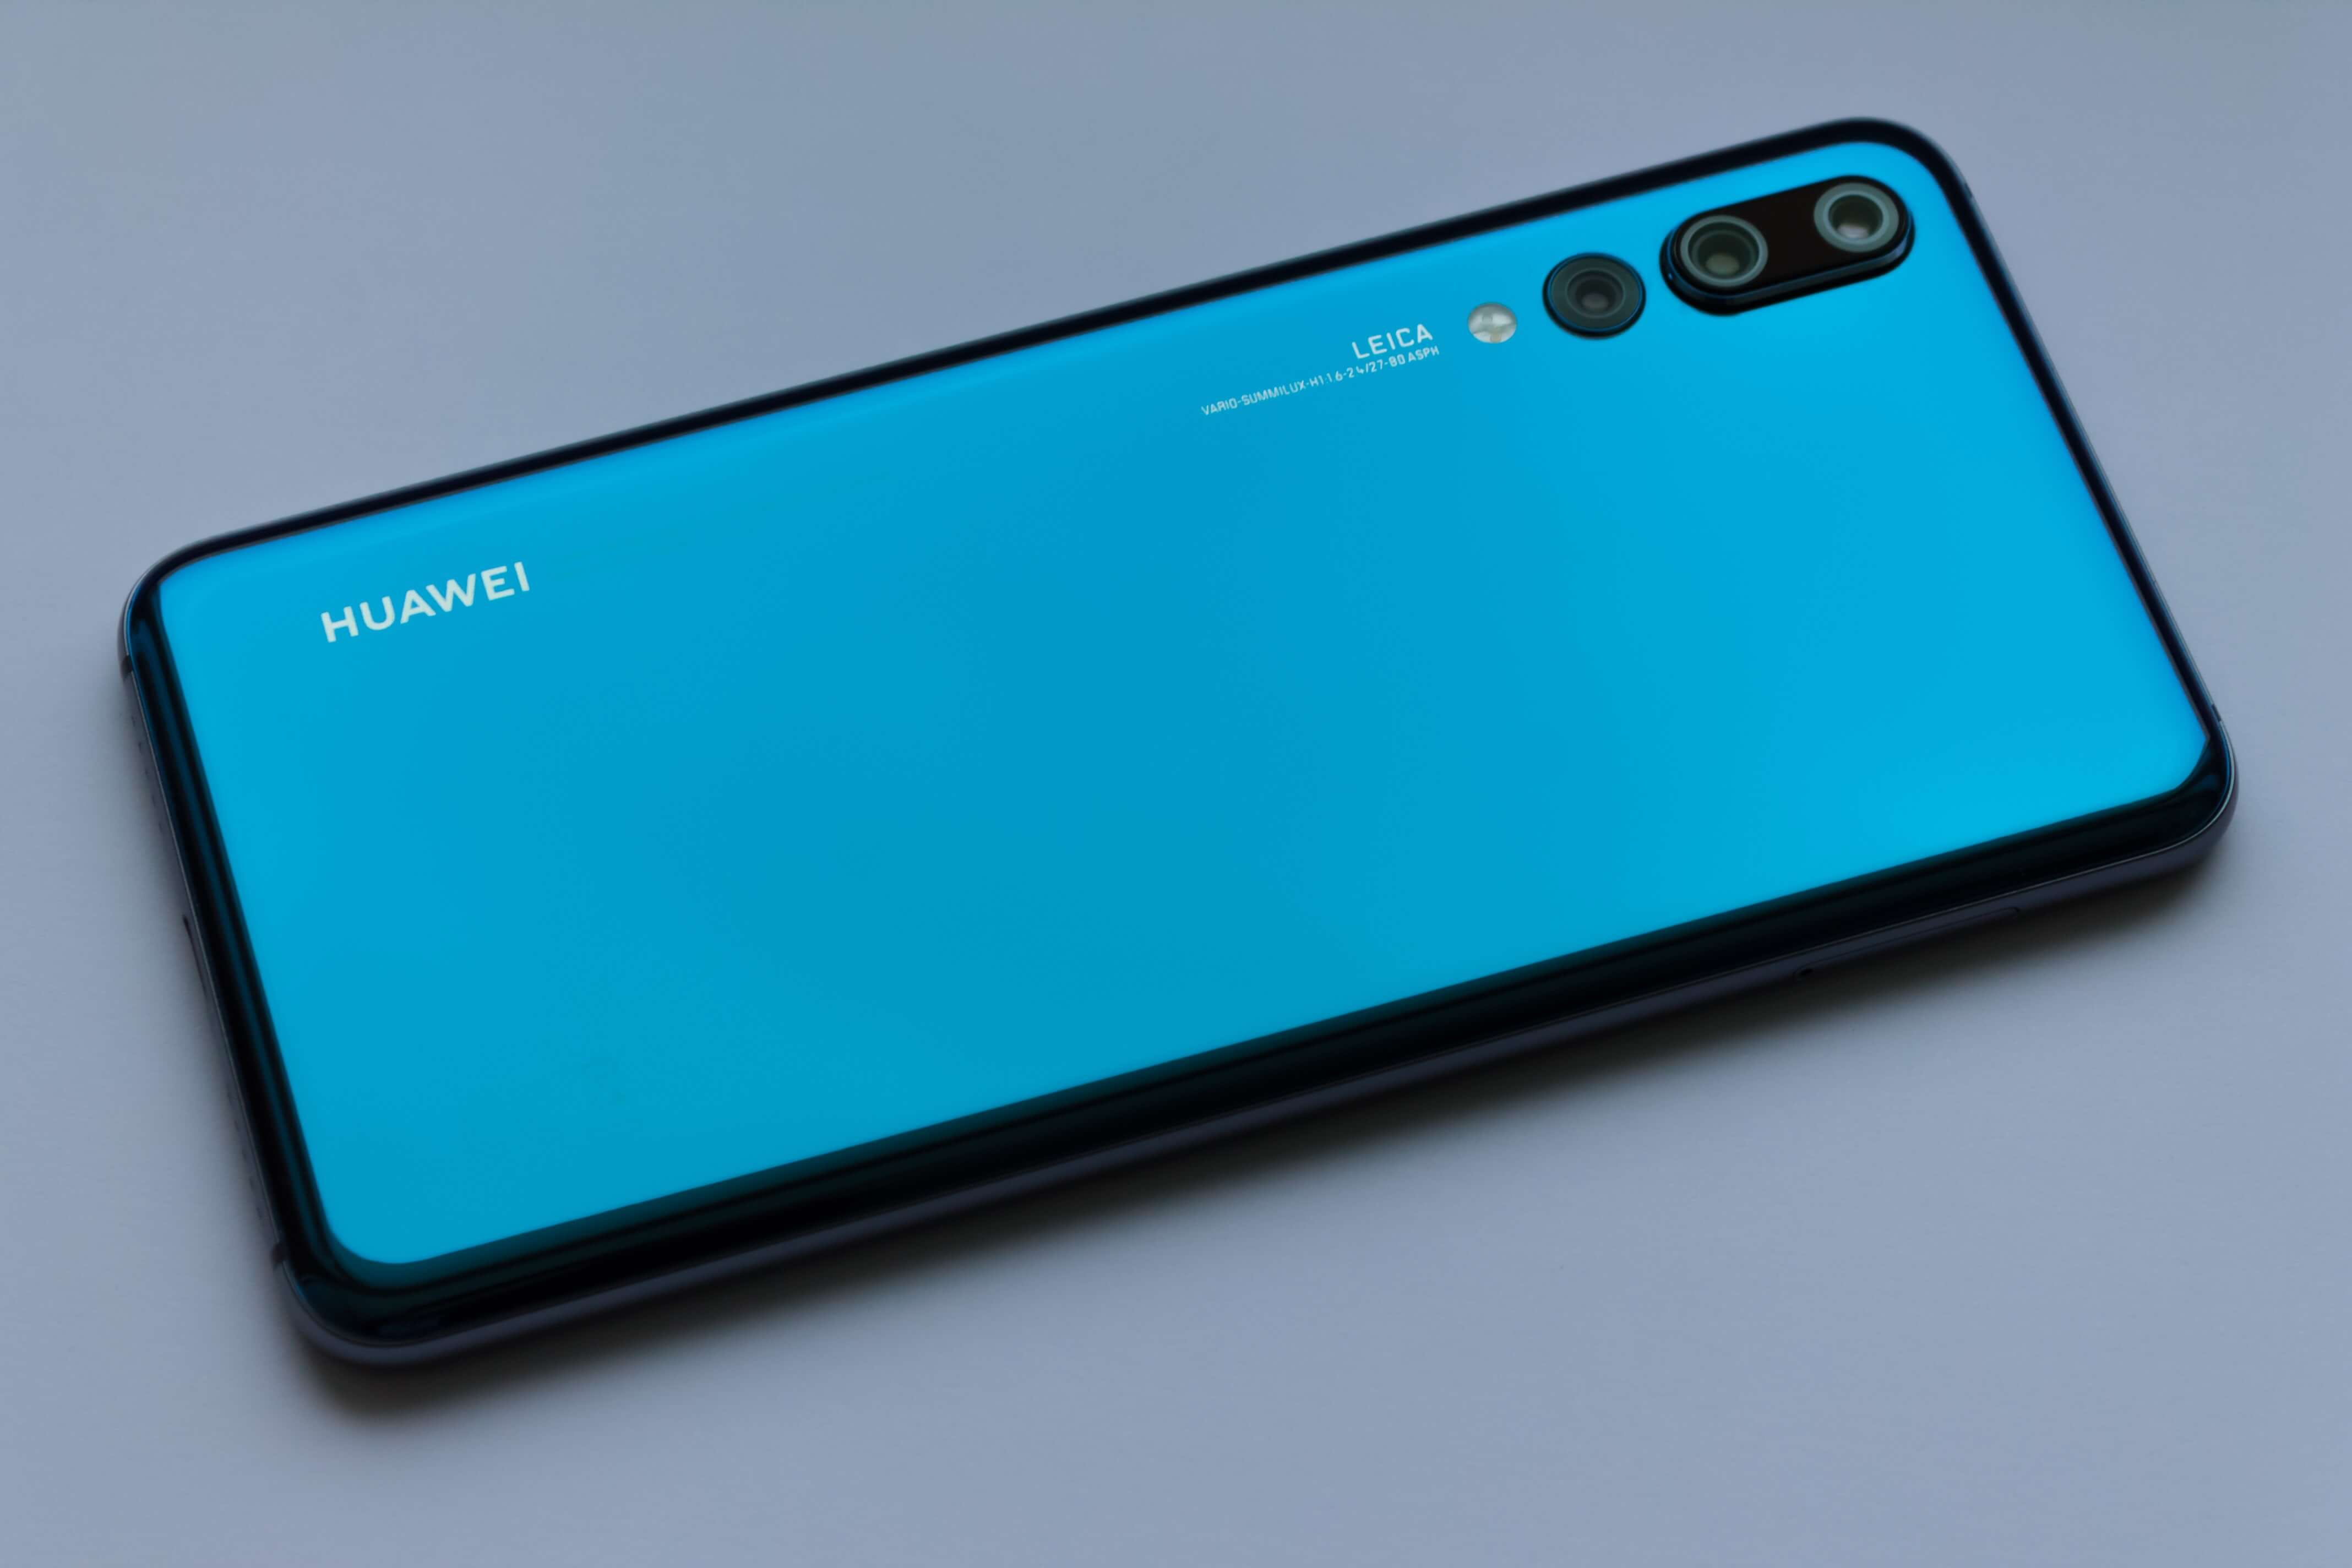 [Updated] What's Happening With Huawei in 2020?